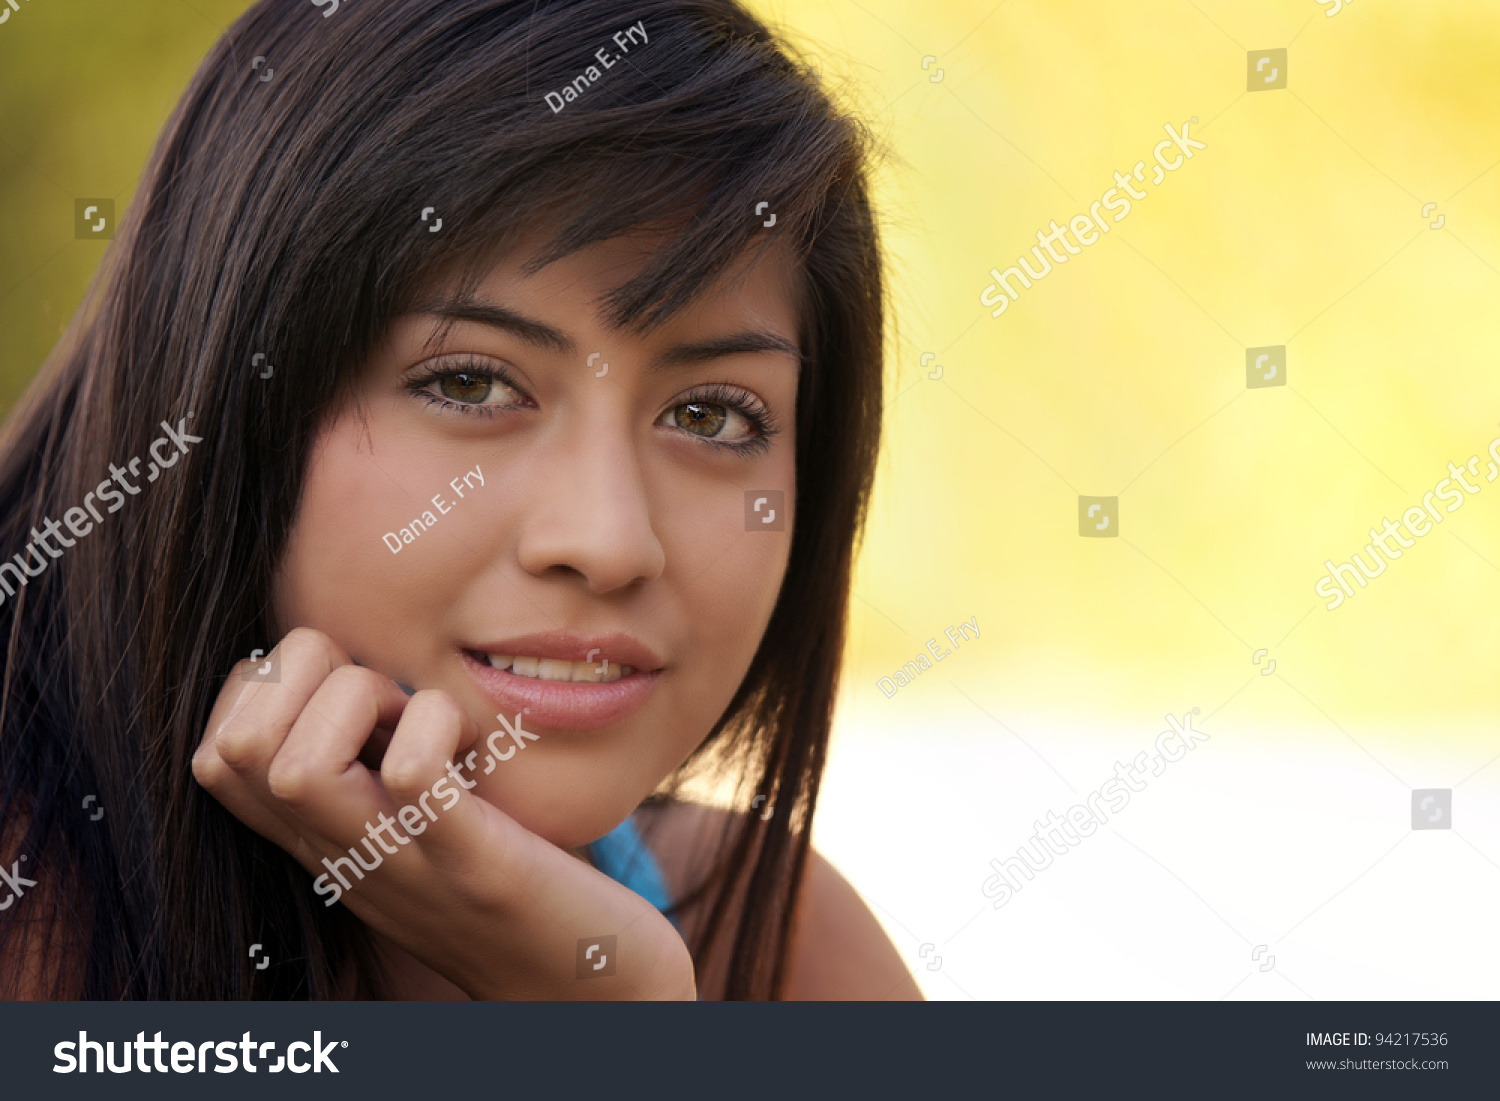 bowling green single hispanic girls Looking to meet the right single women in bowling green see your matches for free on eharmony - #1 trusted bowling green, ky online dating site.